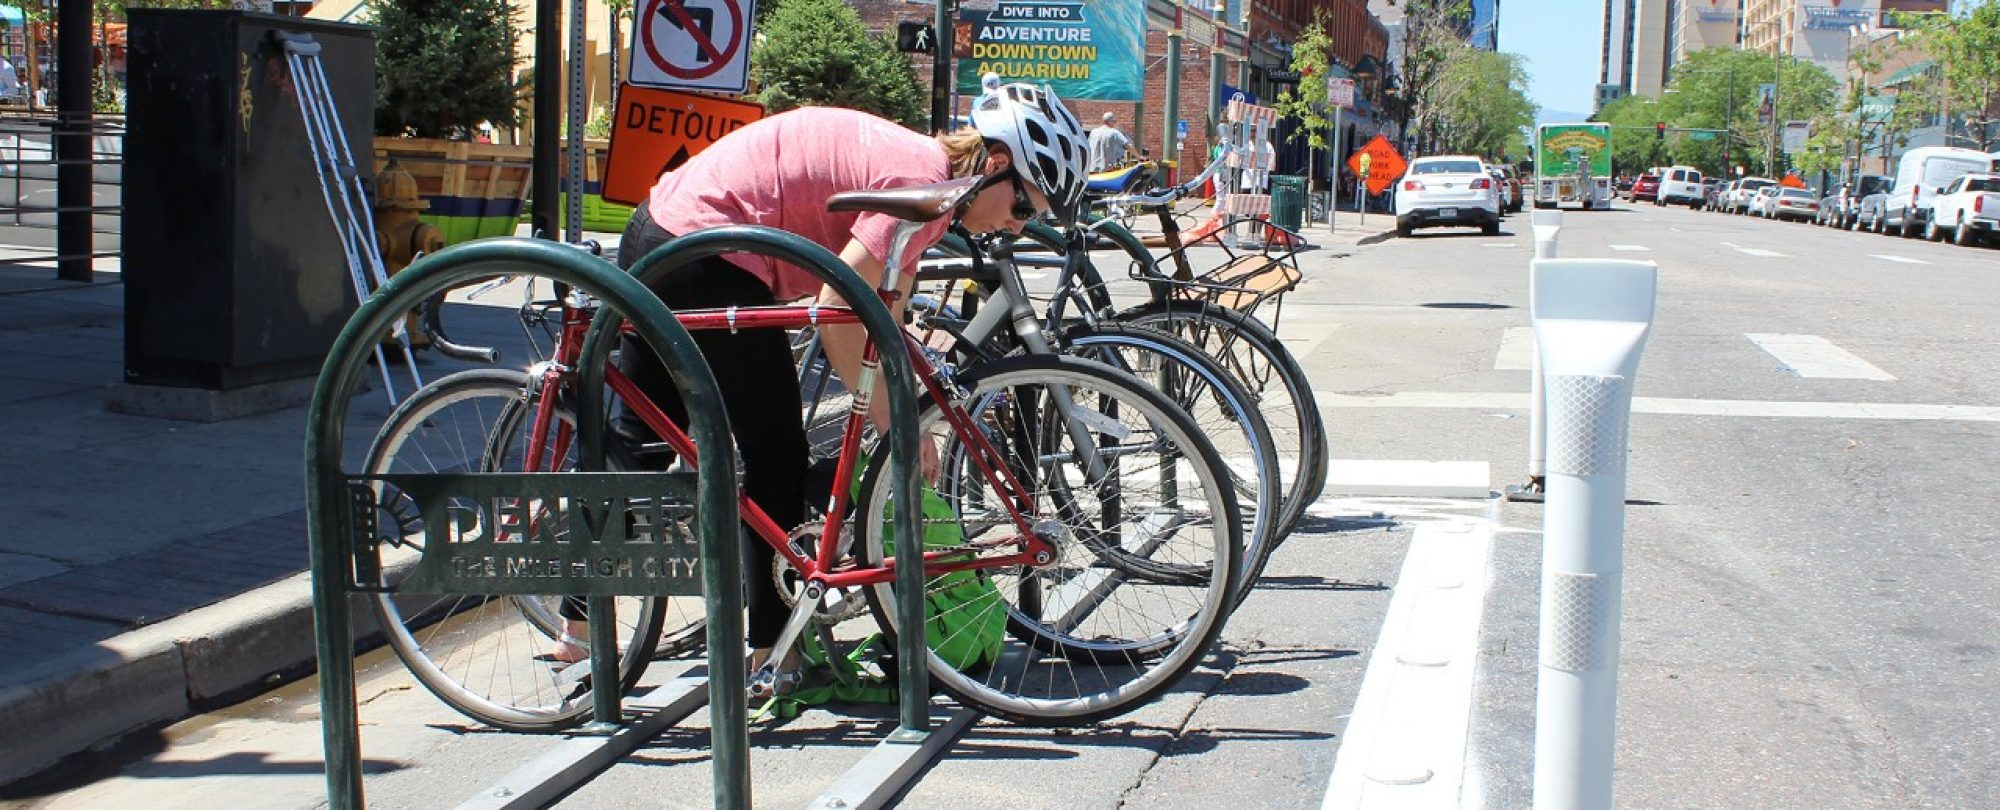 rider in helmet unlocking bike at Denver branded bike parking rack